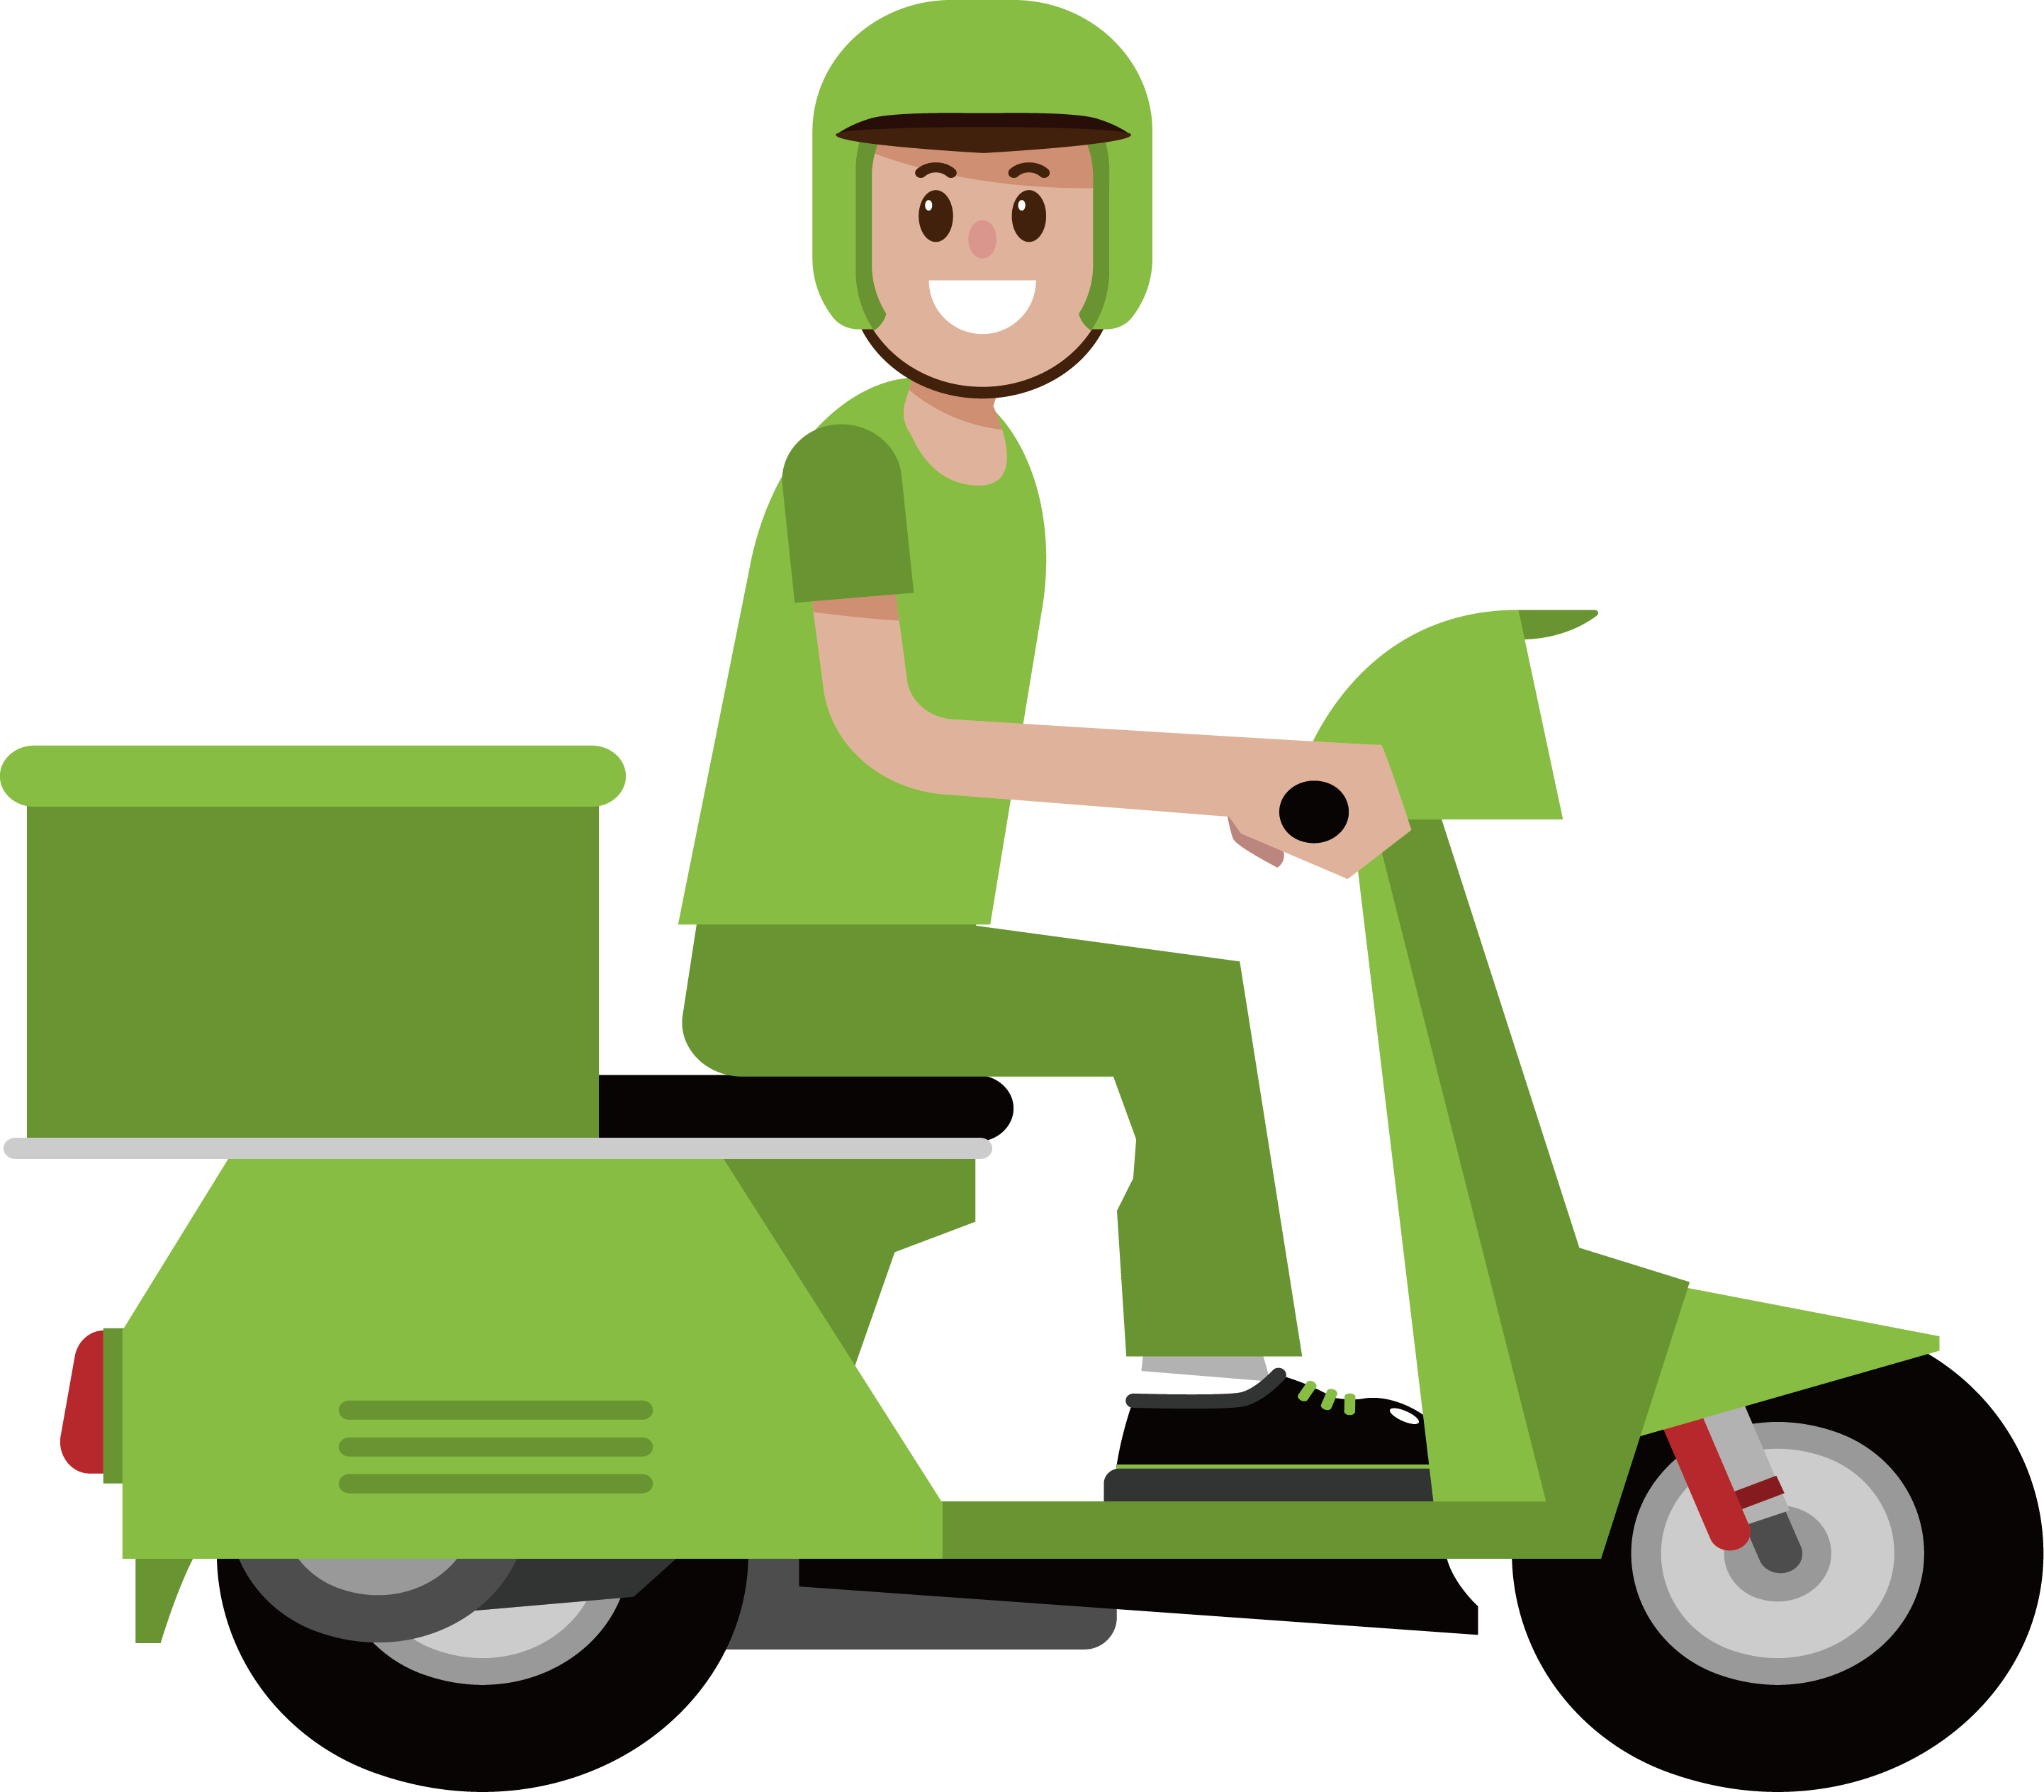 Motorcycle Clipart Pizza.